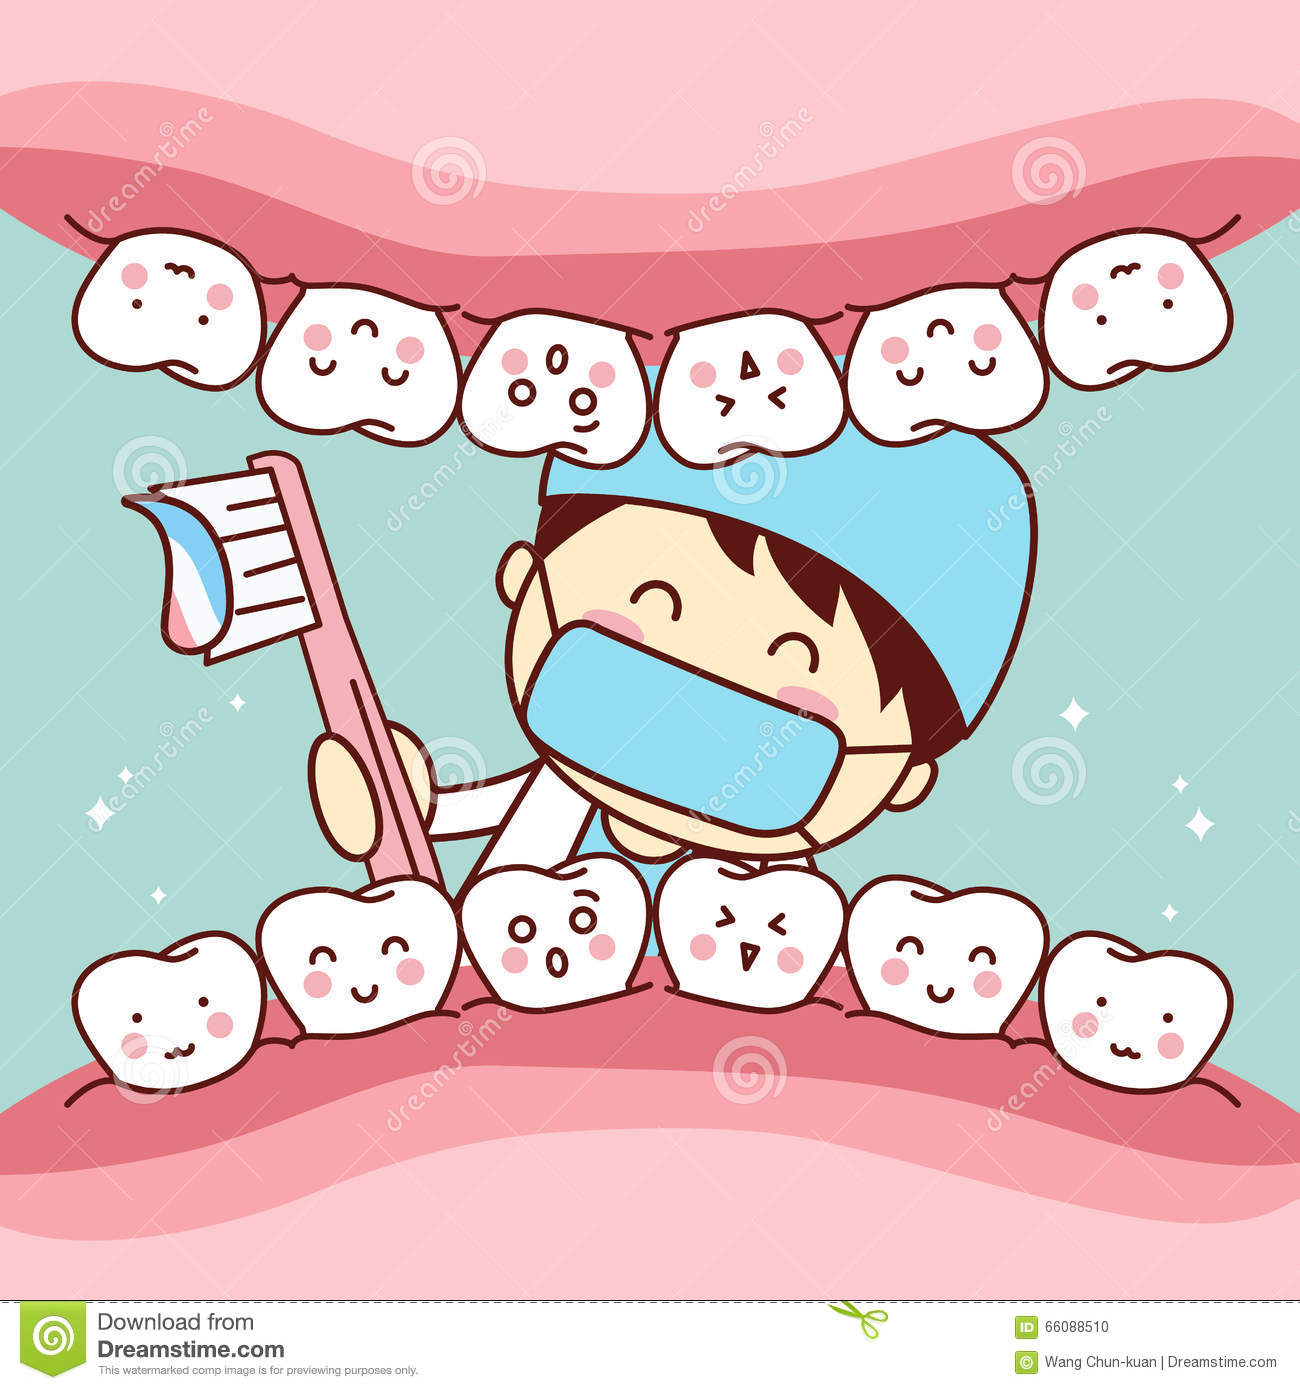 cute-cartoon-dentist-brush-tooth-doctor-great-health-dental-care-concept-66088510.jpg